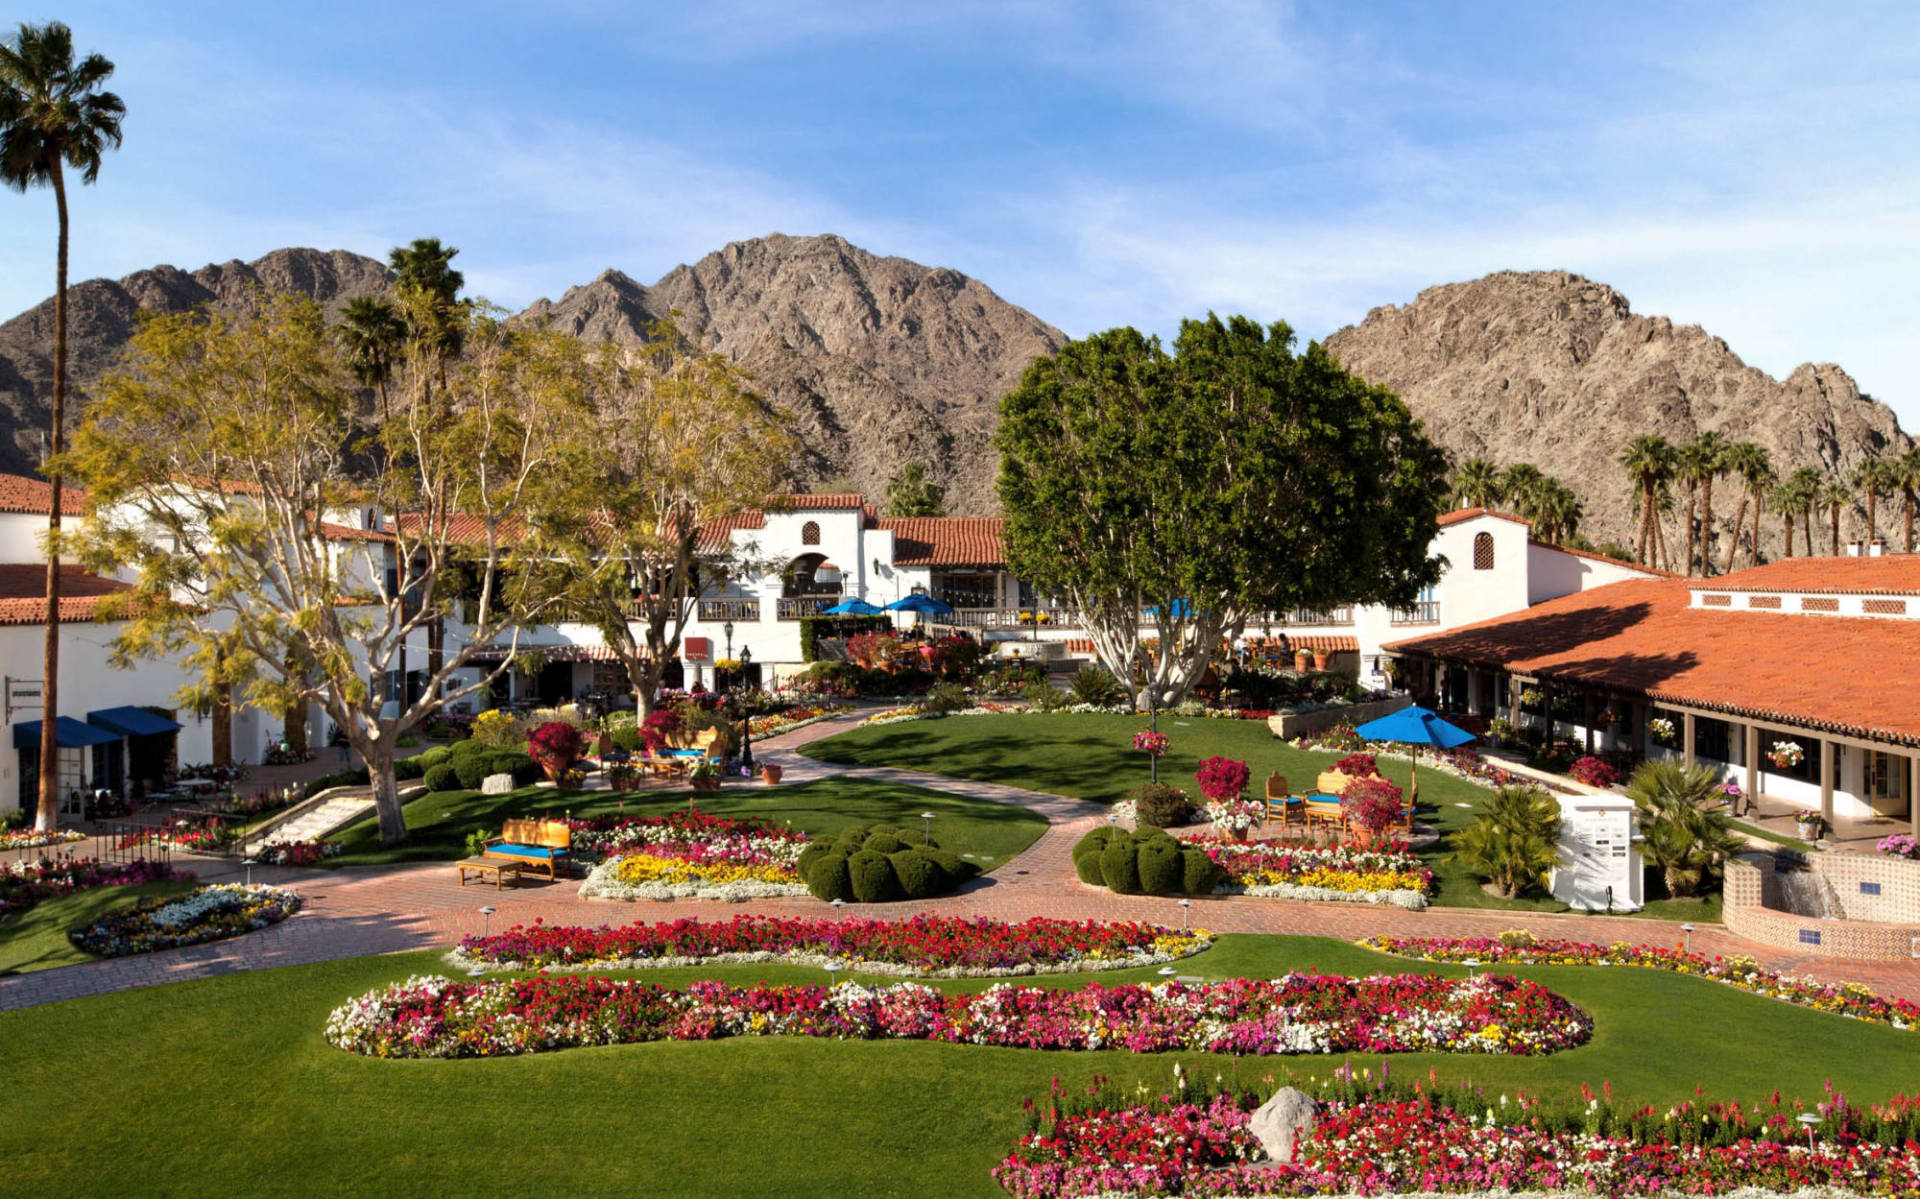 La Quinta Resort & Club in Palm Springs: La Quinta Resort & Club - Resort